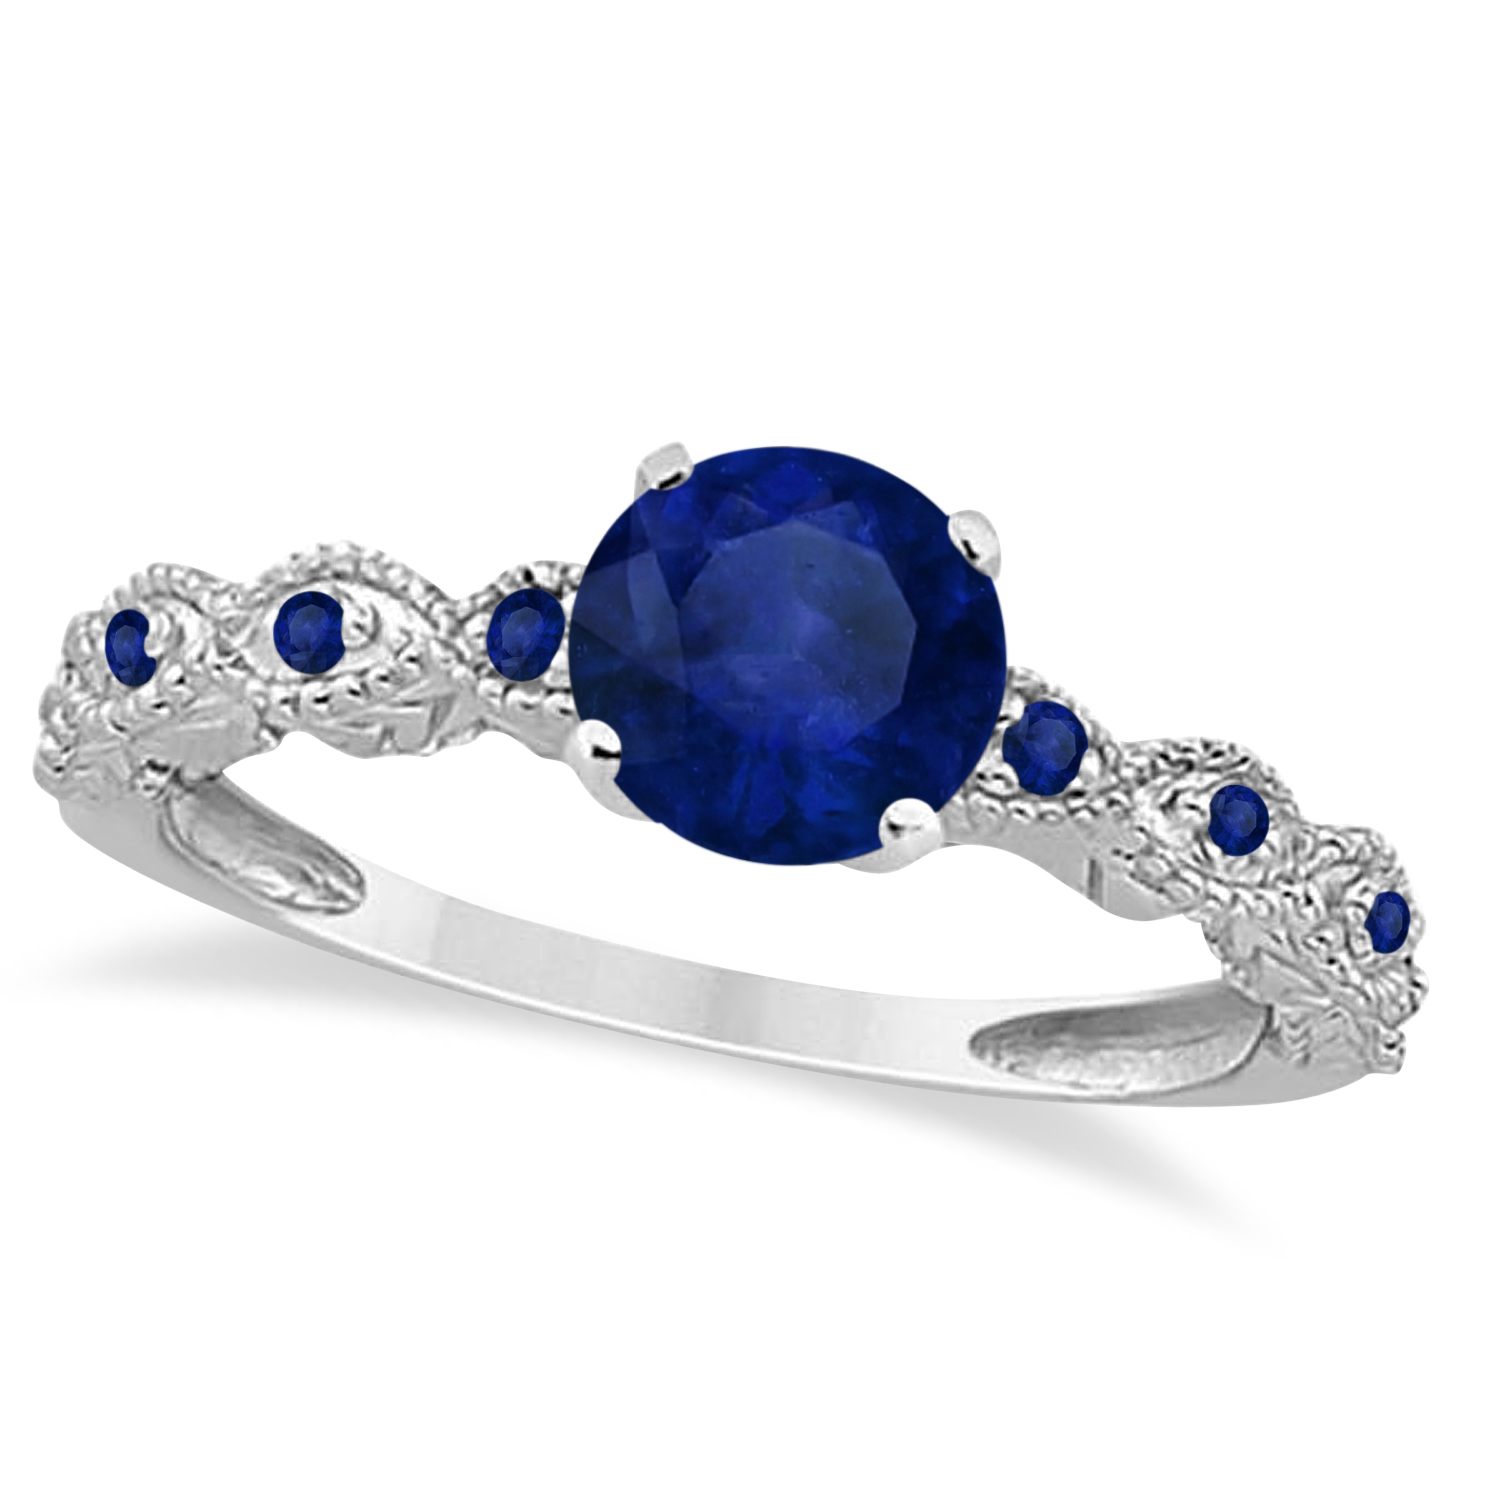 Vintage Blue Sapphire Engagement Ring Bridal Set 14k White Gold 1.36ct